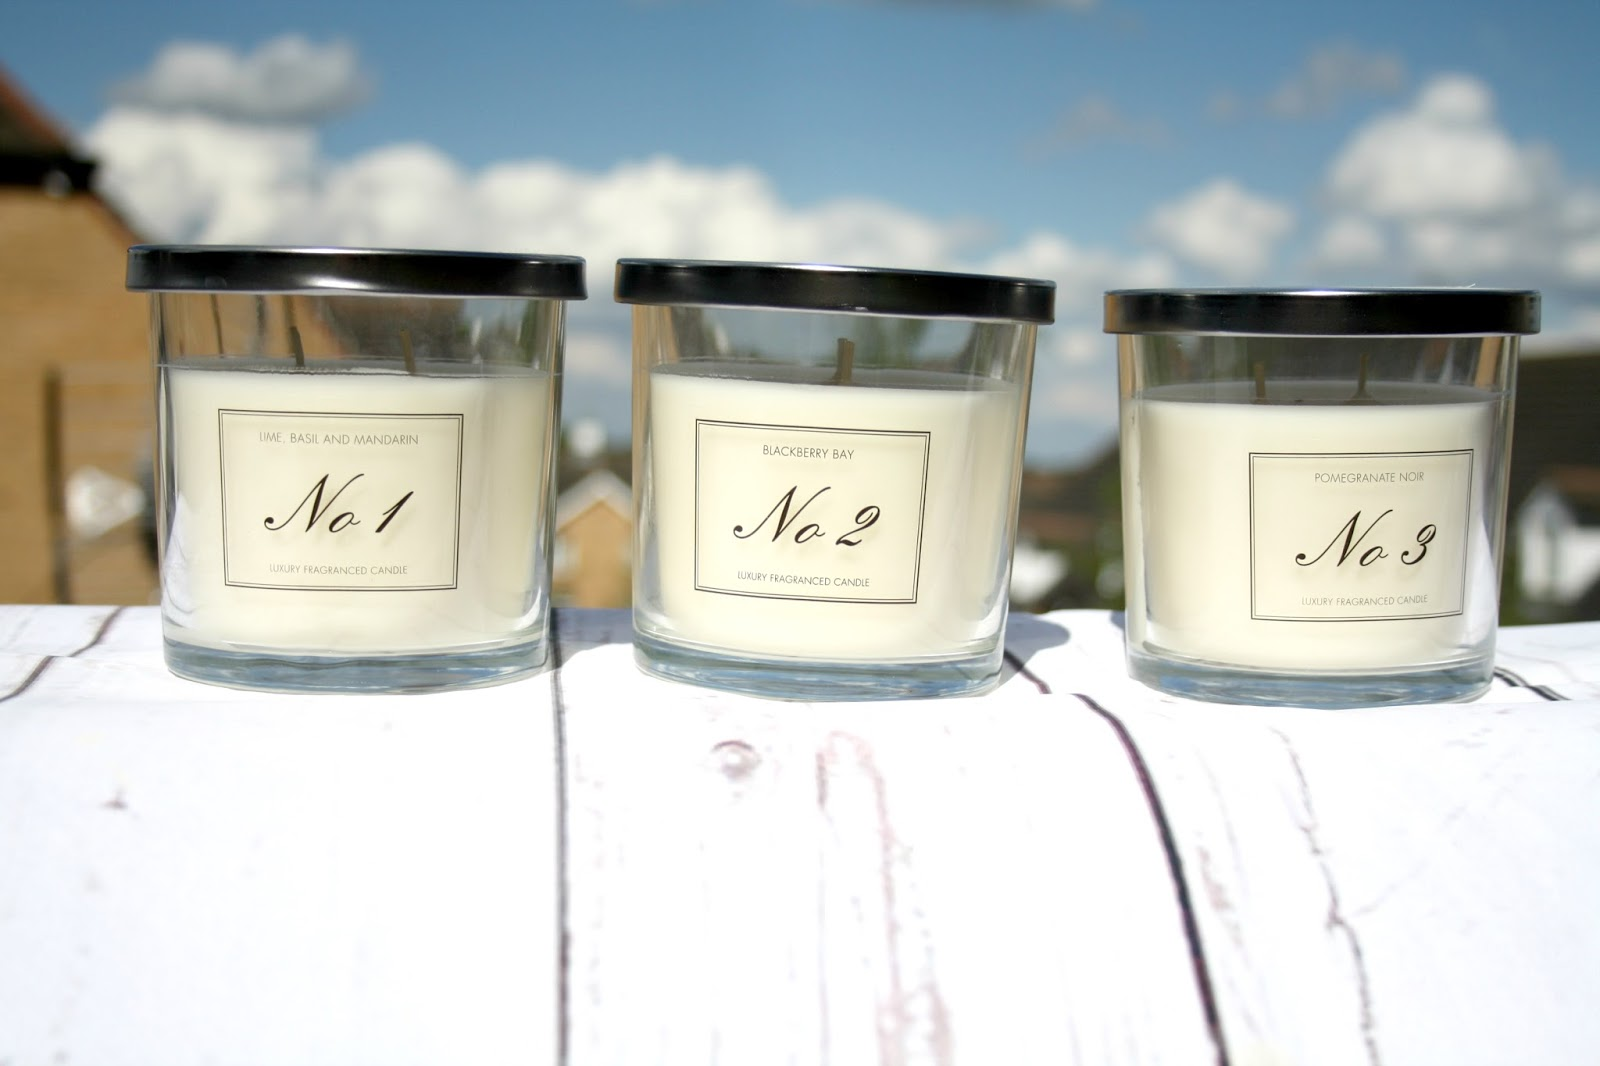 When My Timeline Exploded With Excitement Over The Jo Malone Candle Dupes From Aldi I Naturally Had To See What All Fuss Was About